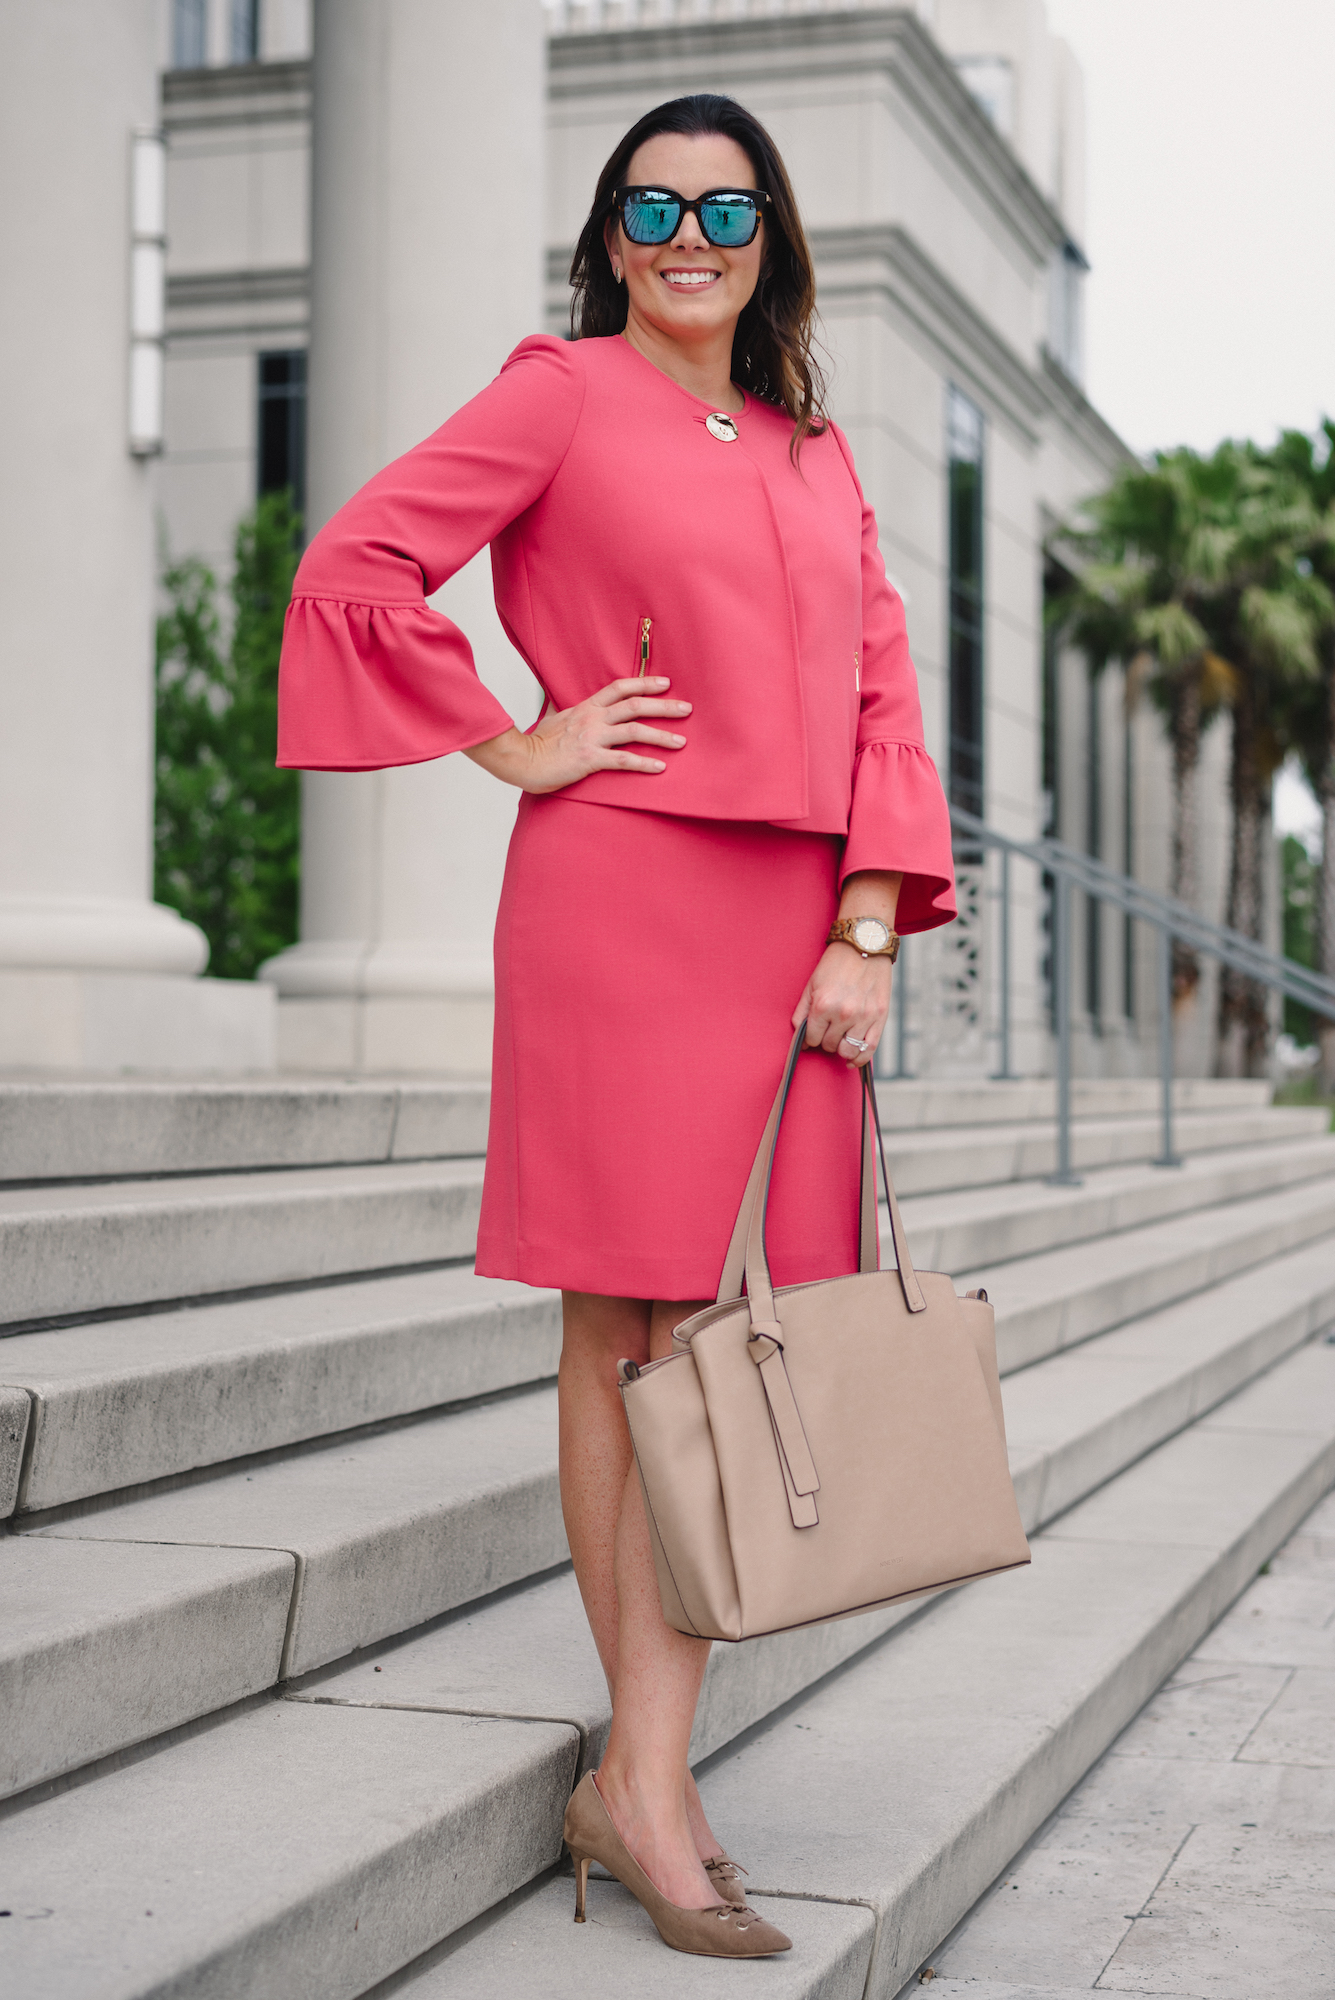 Jord watch giveaway, pink suit, bell sleeve, courthouse, courthouse